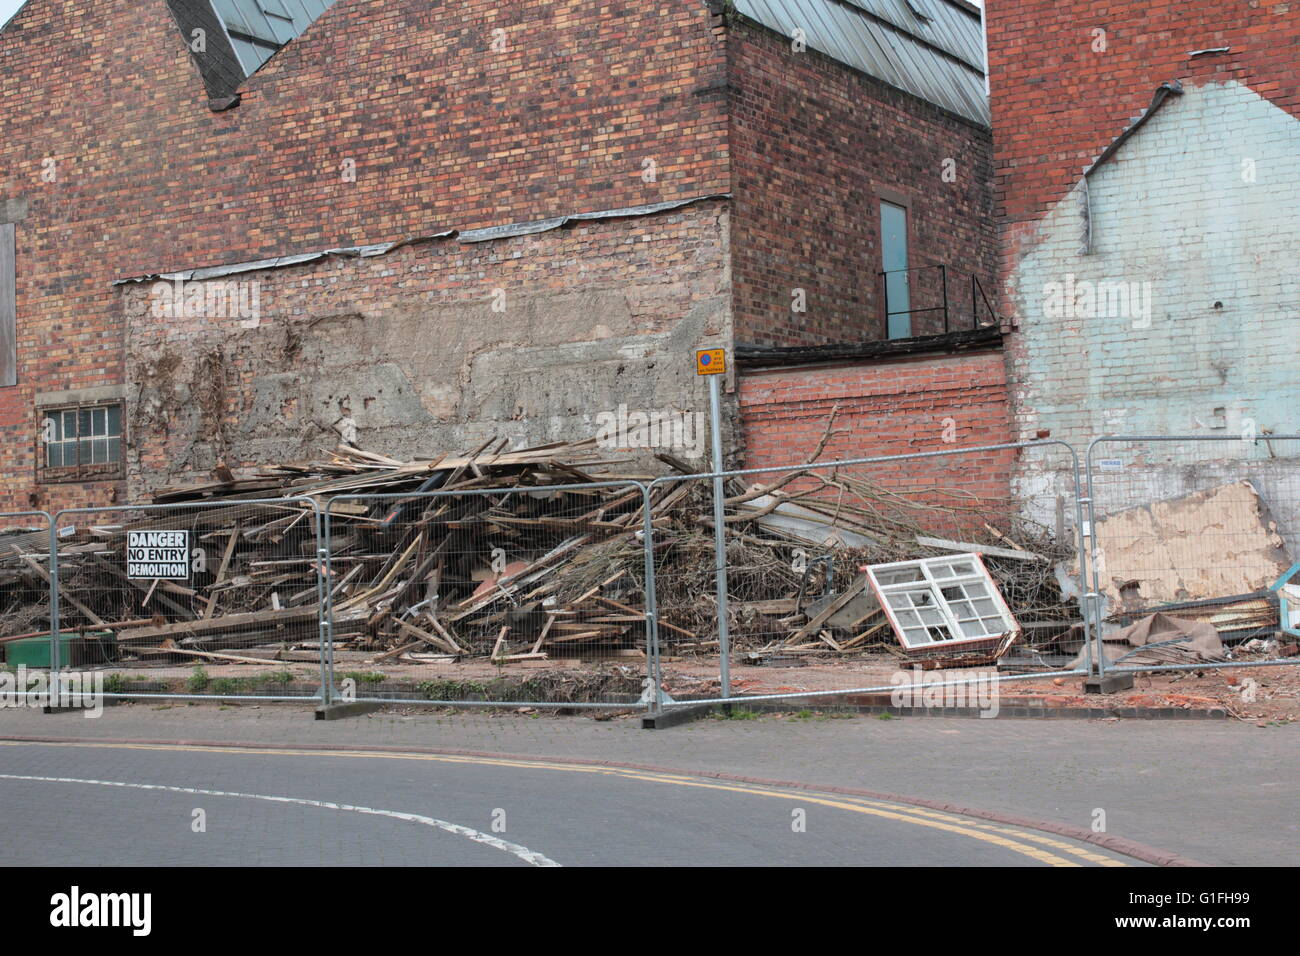 demolition work decay and renewal - Stock Image